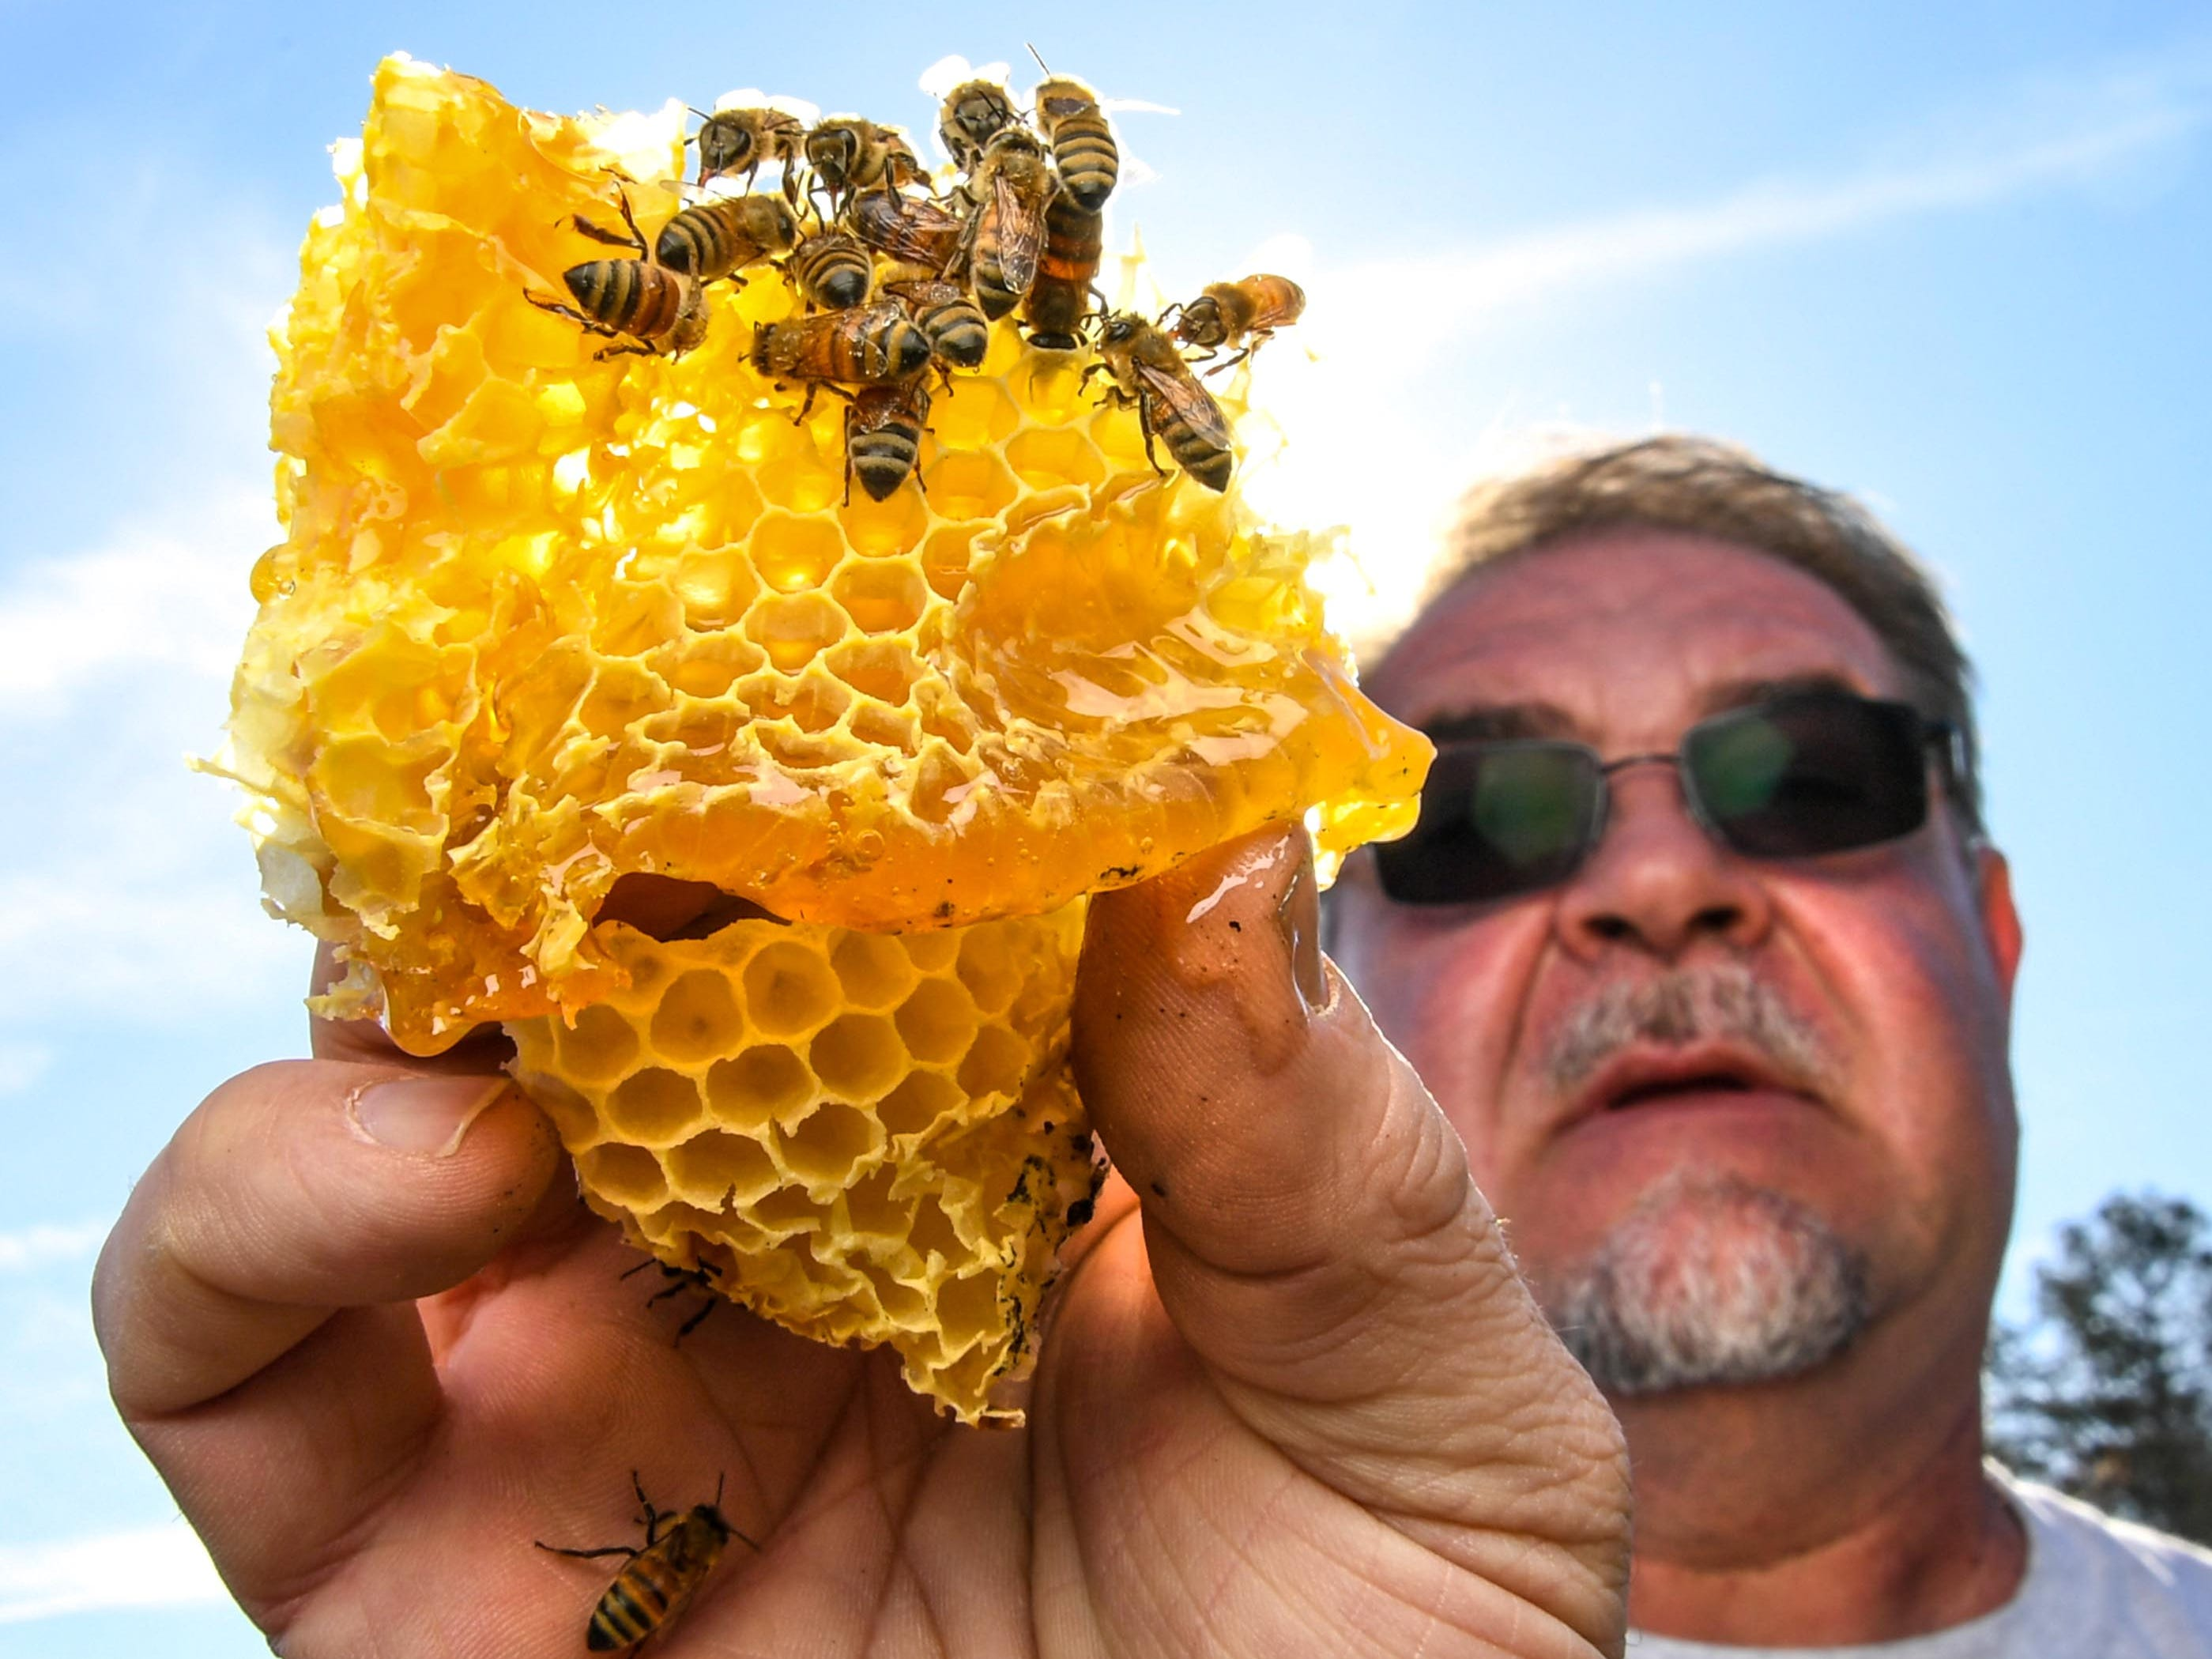 Kerry Owen, owner of Bee Well Honey in Pickens holds a honeycomb with bees at the Kaplan farm in Pickens Thursday.